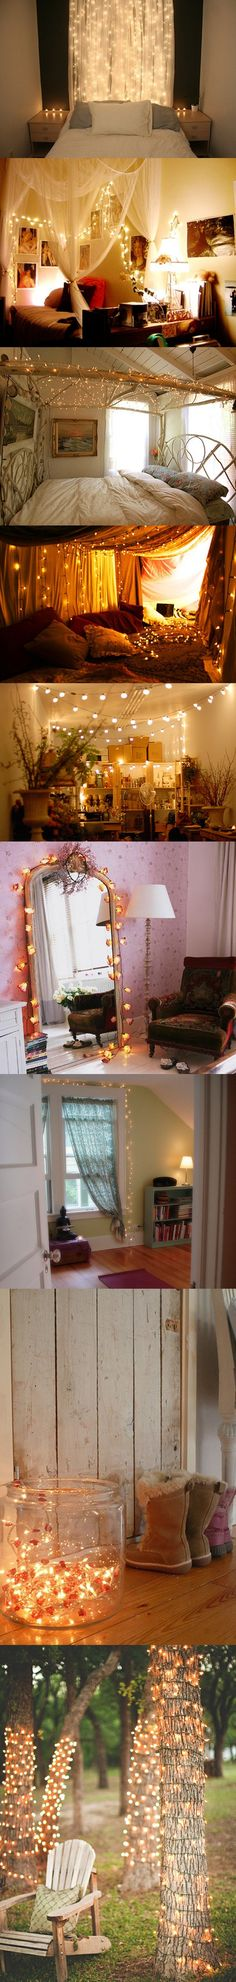 twinkle, twinkle #holiday decor